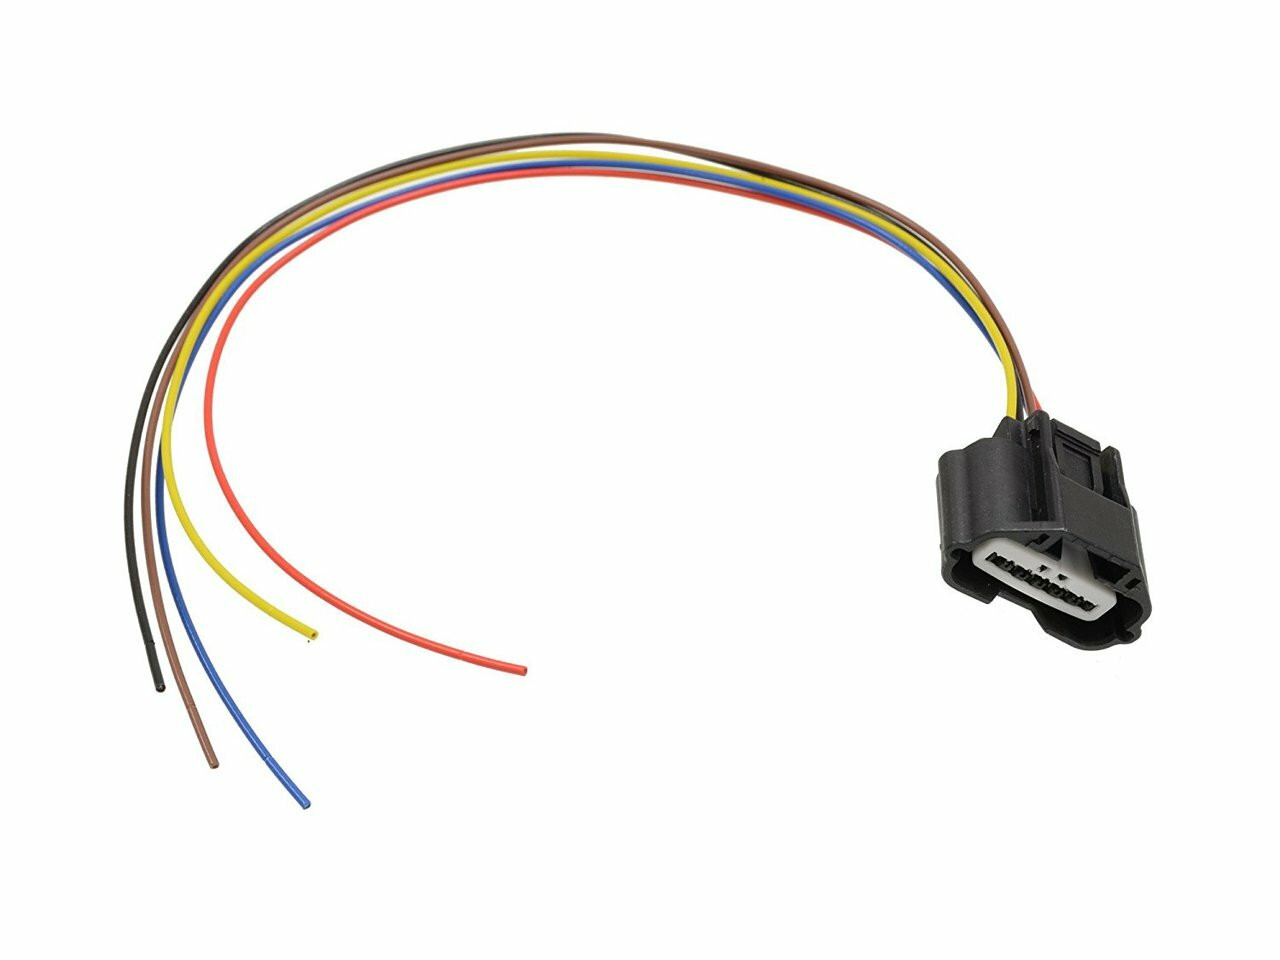 hight resolution of 5 wire nissan maf mass air flow connector infiniti vq35 10 harness nissan maf wire harness